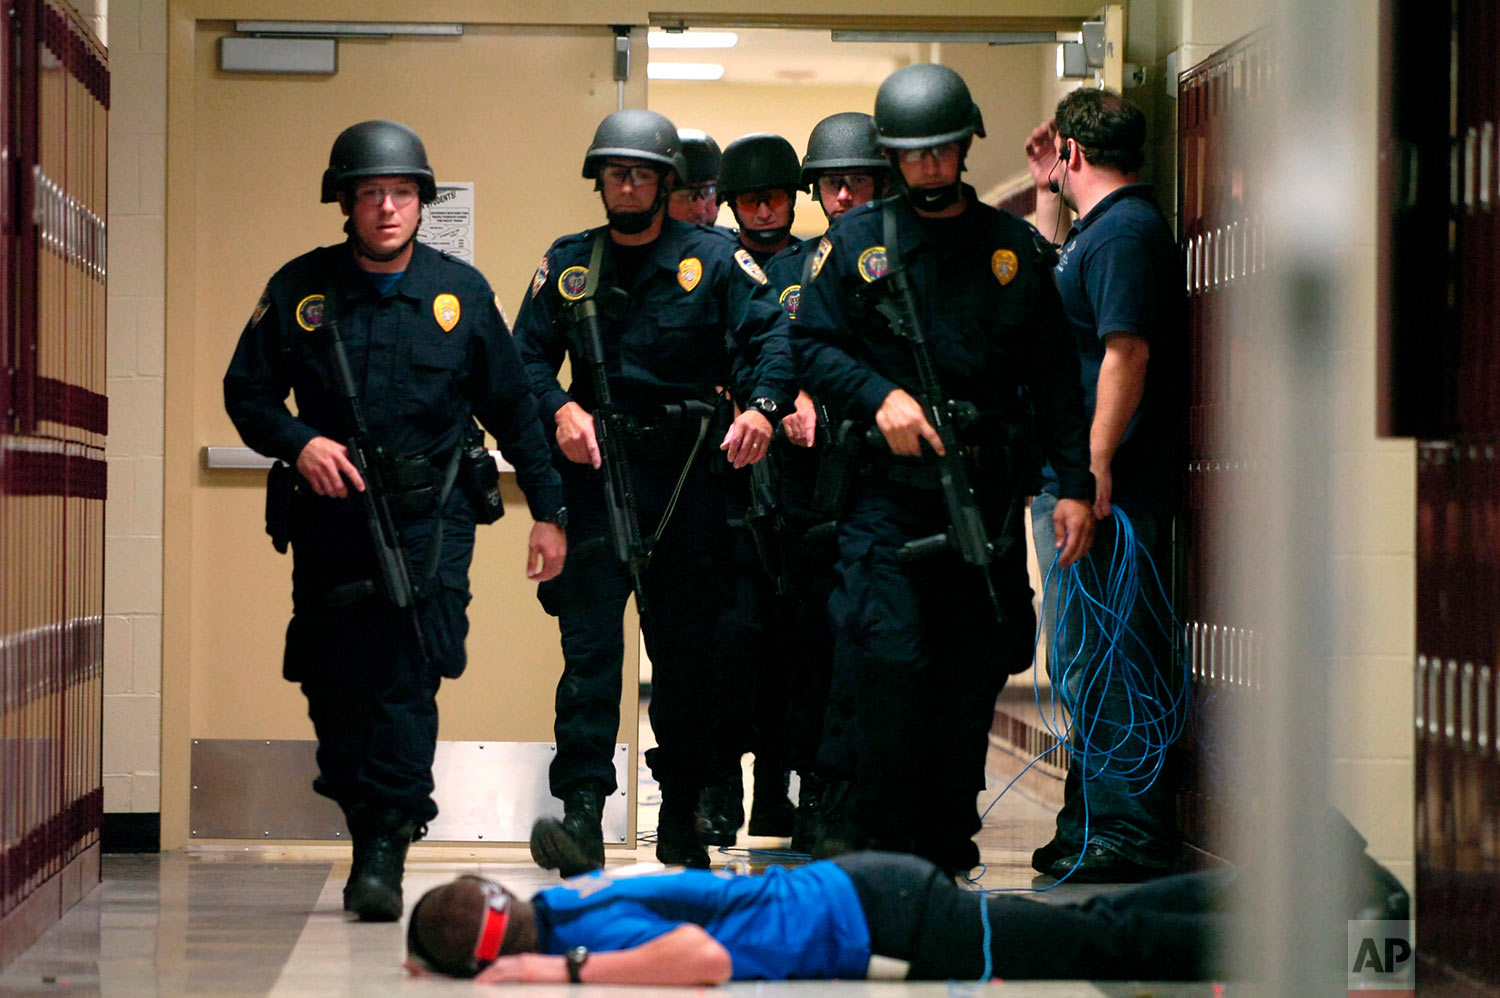 "In this May 29, 2008 photo, Baton Rouge Police Department SWAT team members walk down a McKinley Middle Magnet School hallway past a fire academy member playing the role of a victim during a simulated hostage situation in Baton Rouge, La. High-tech hardware installed by NetTalon Security Systems reduced ""casualties"" during the exercise, according to then-principal Herman Brister. But in hindsight, he said he would have rather hired an armed resource officer. (Richard Alan Hannon/The Advocate via AP)"